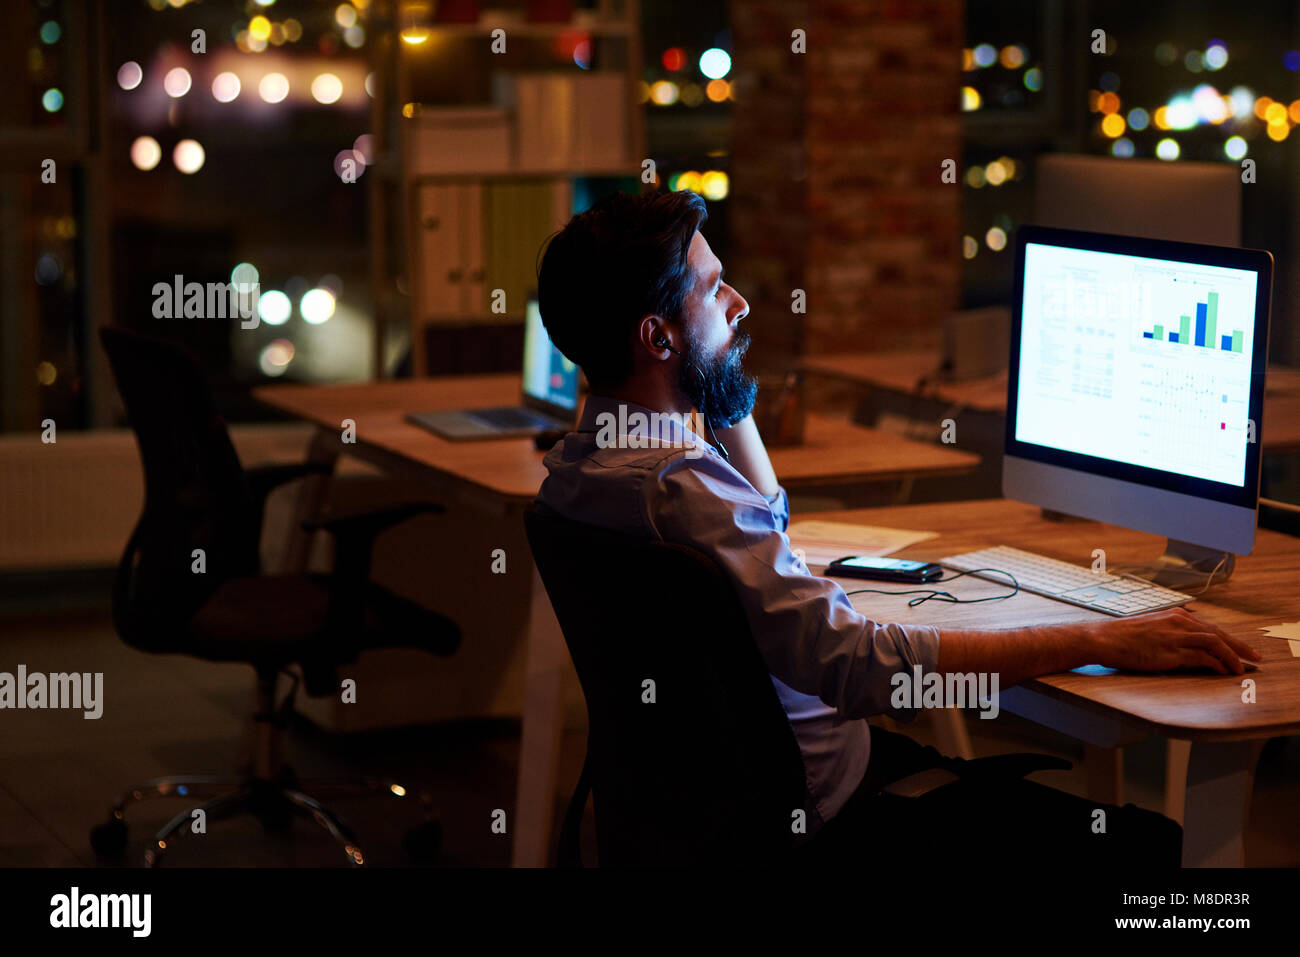 Young businessman looking at computer on office desk at night - Stock Image